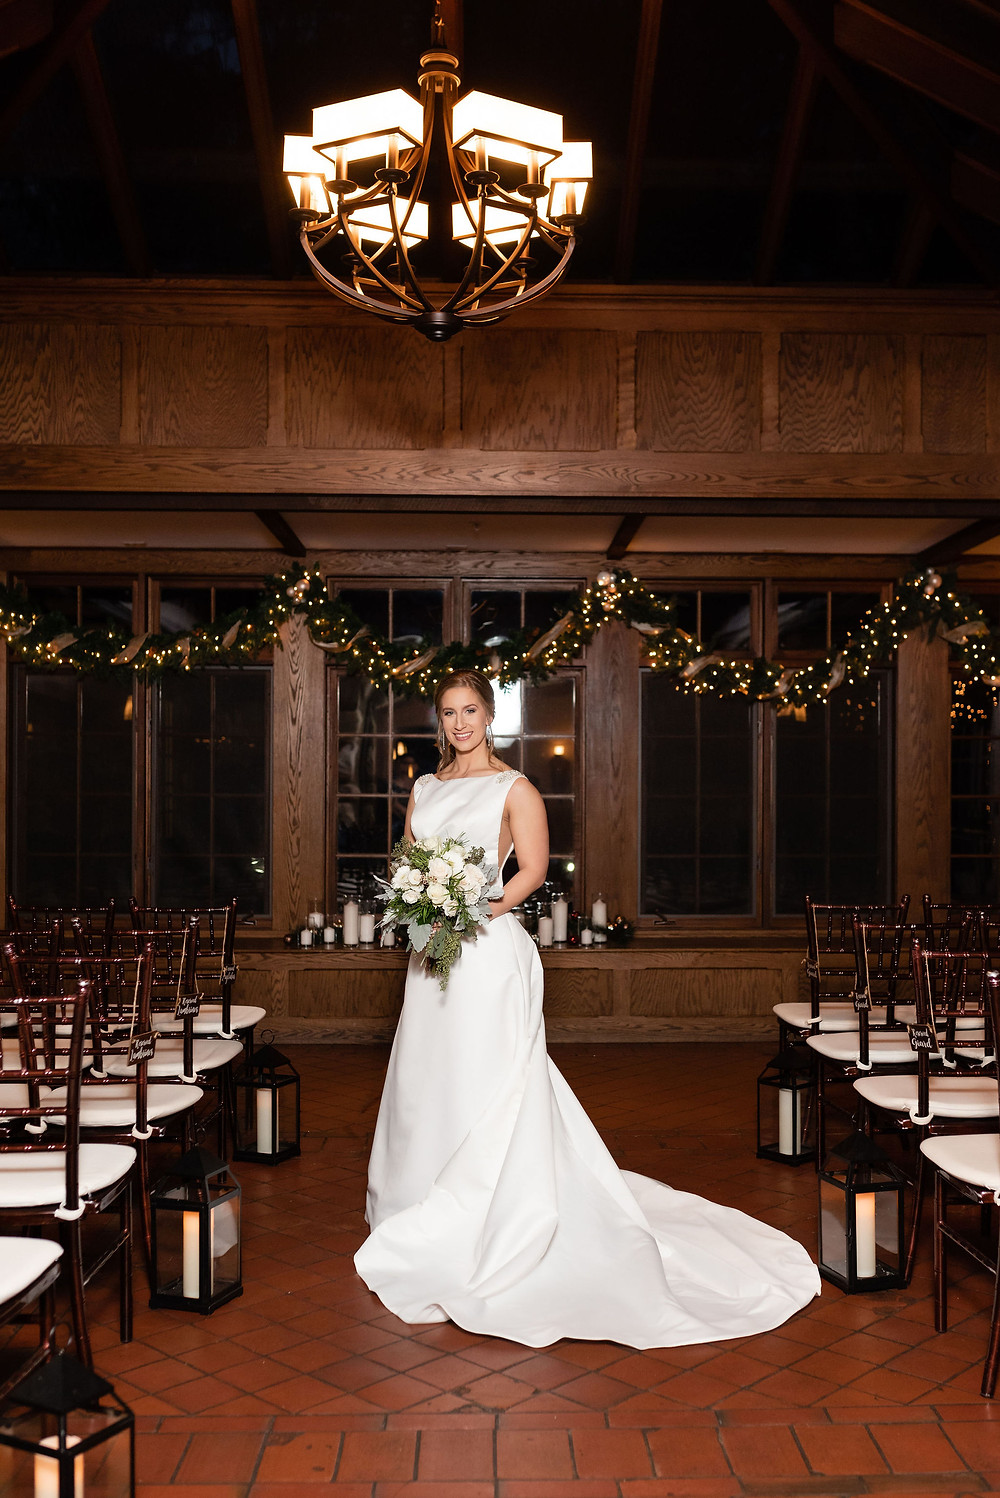 bridal portrait in the ceremony room at willowdale estate. candles lit and twinkle lights around garland for the christmas themed wedding